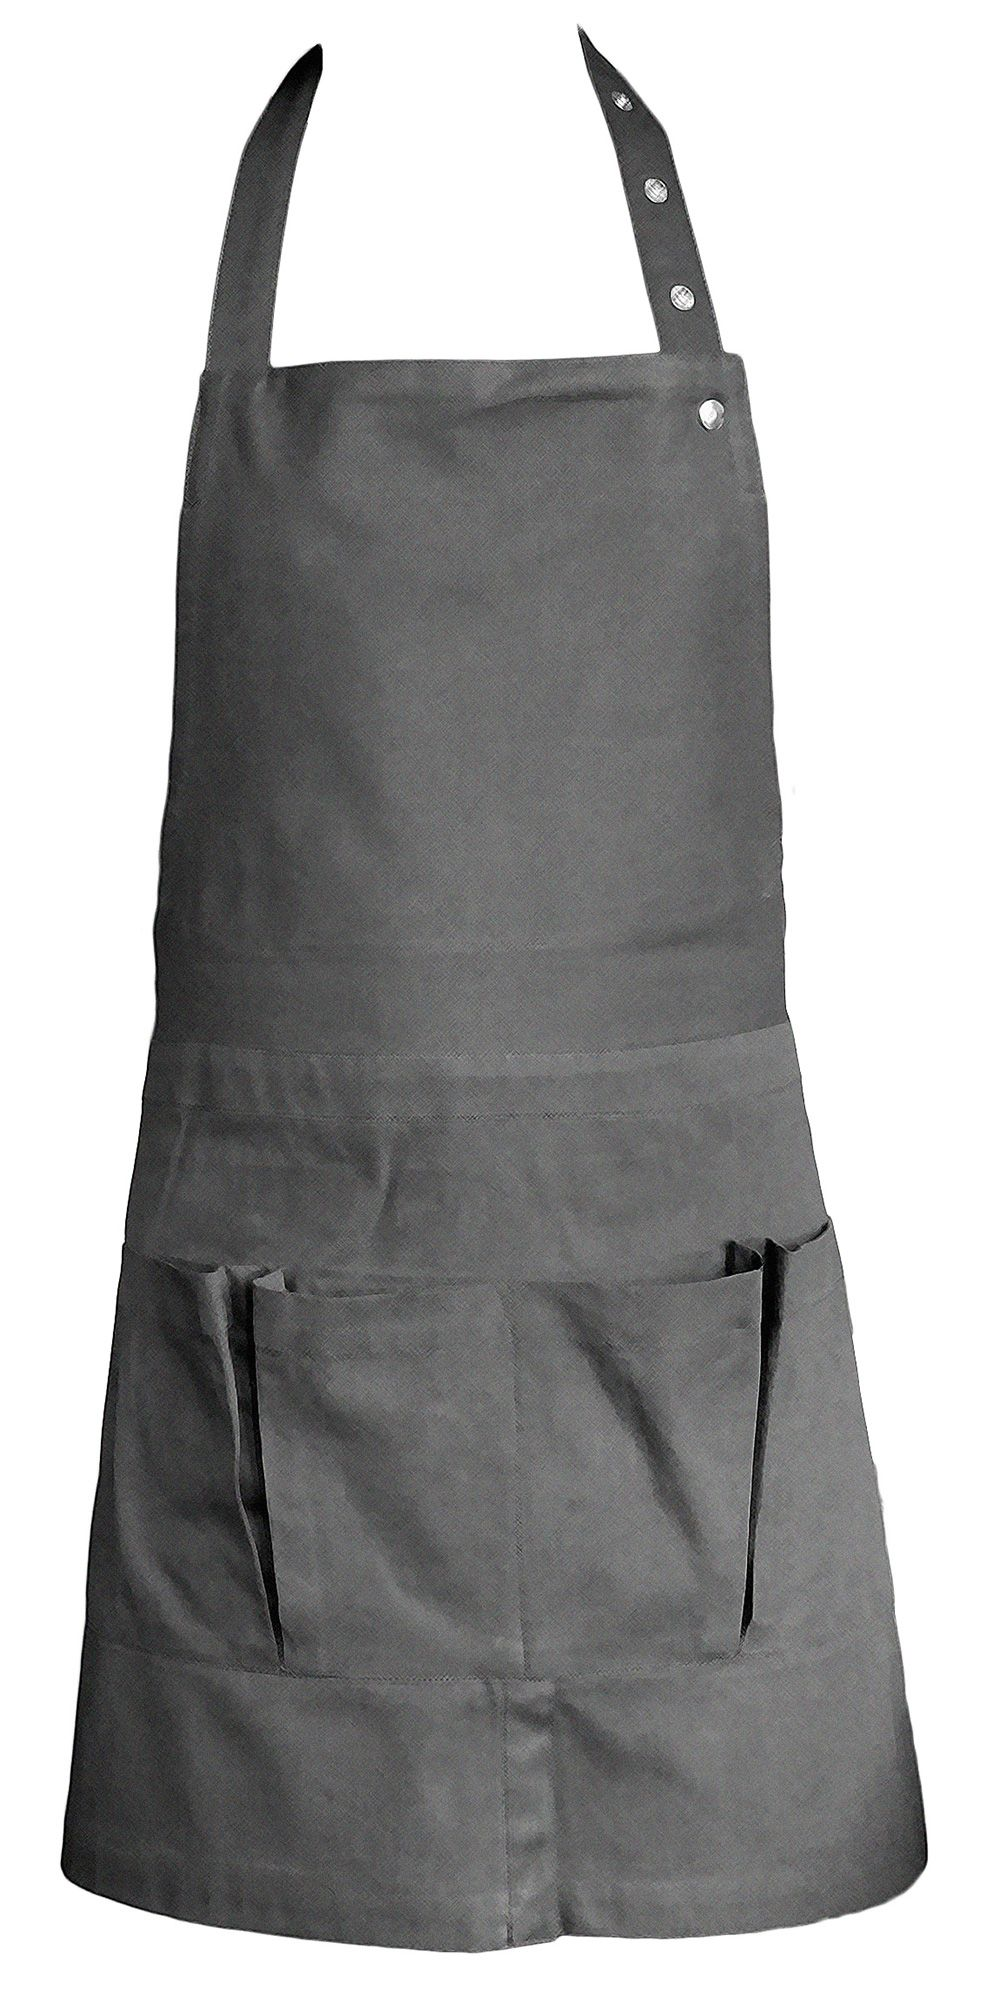 The Organic Company Creative And Garden Apron: Great Functionality Meets  Great Appearances. A Durable